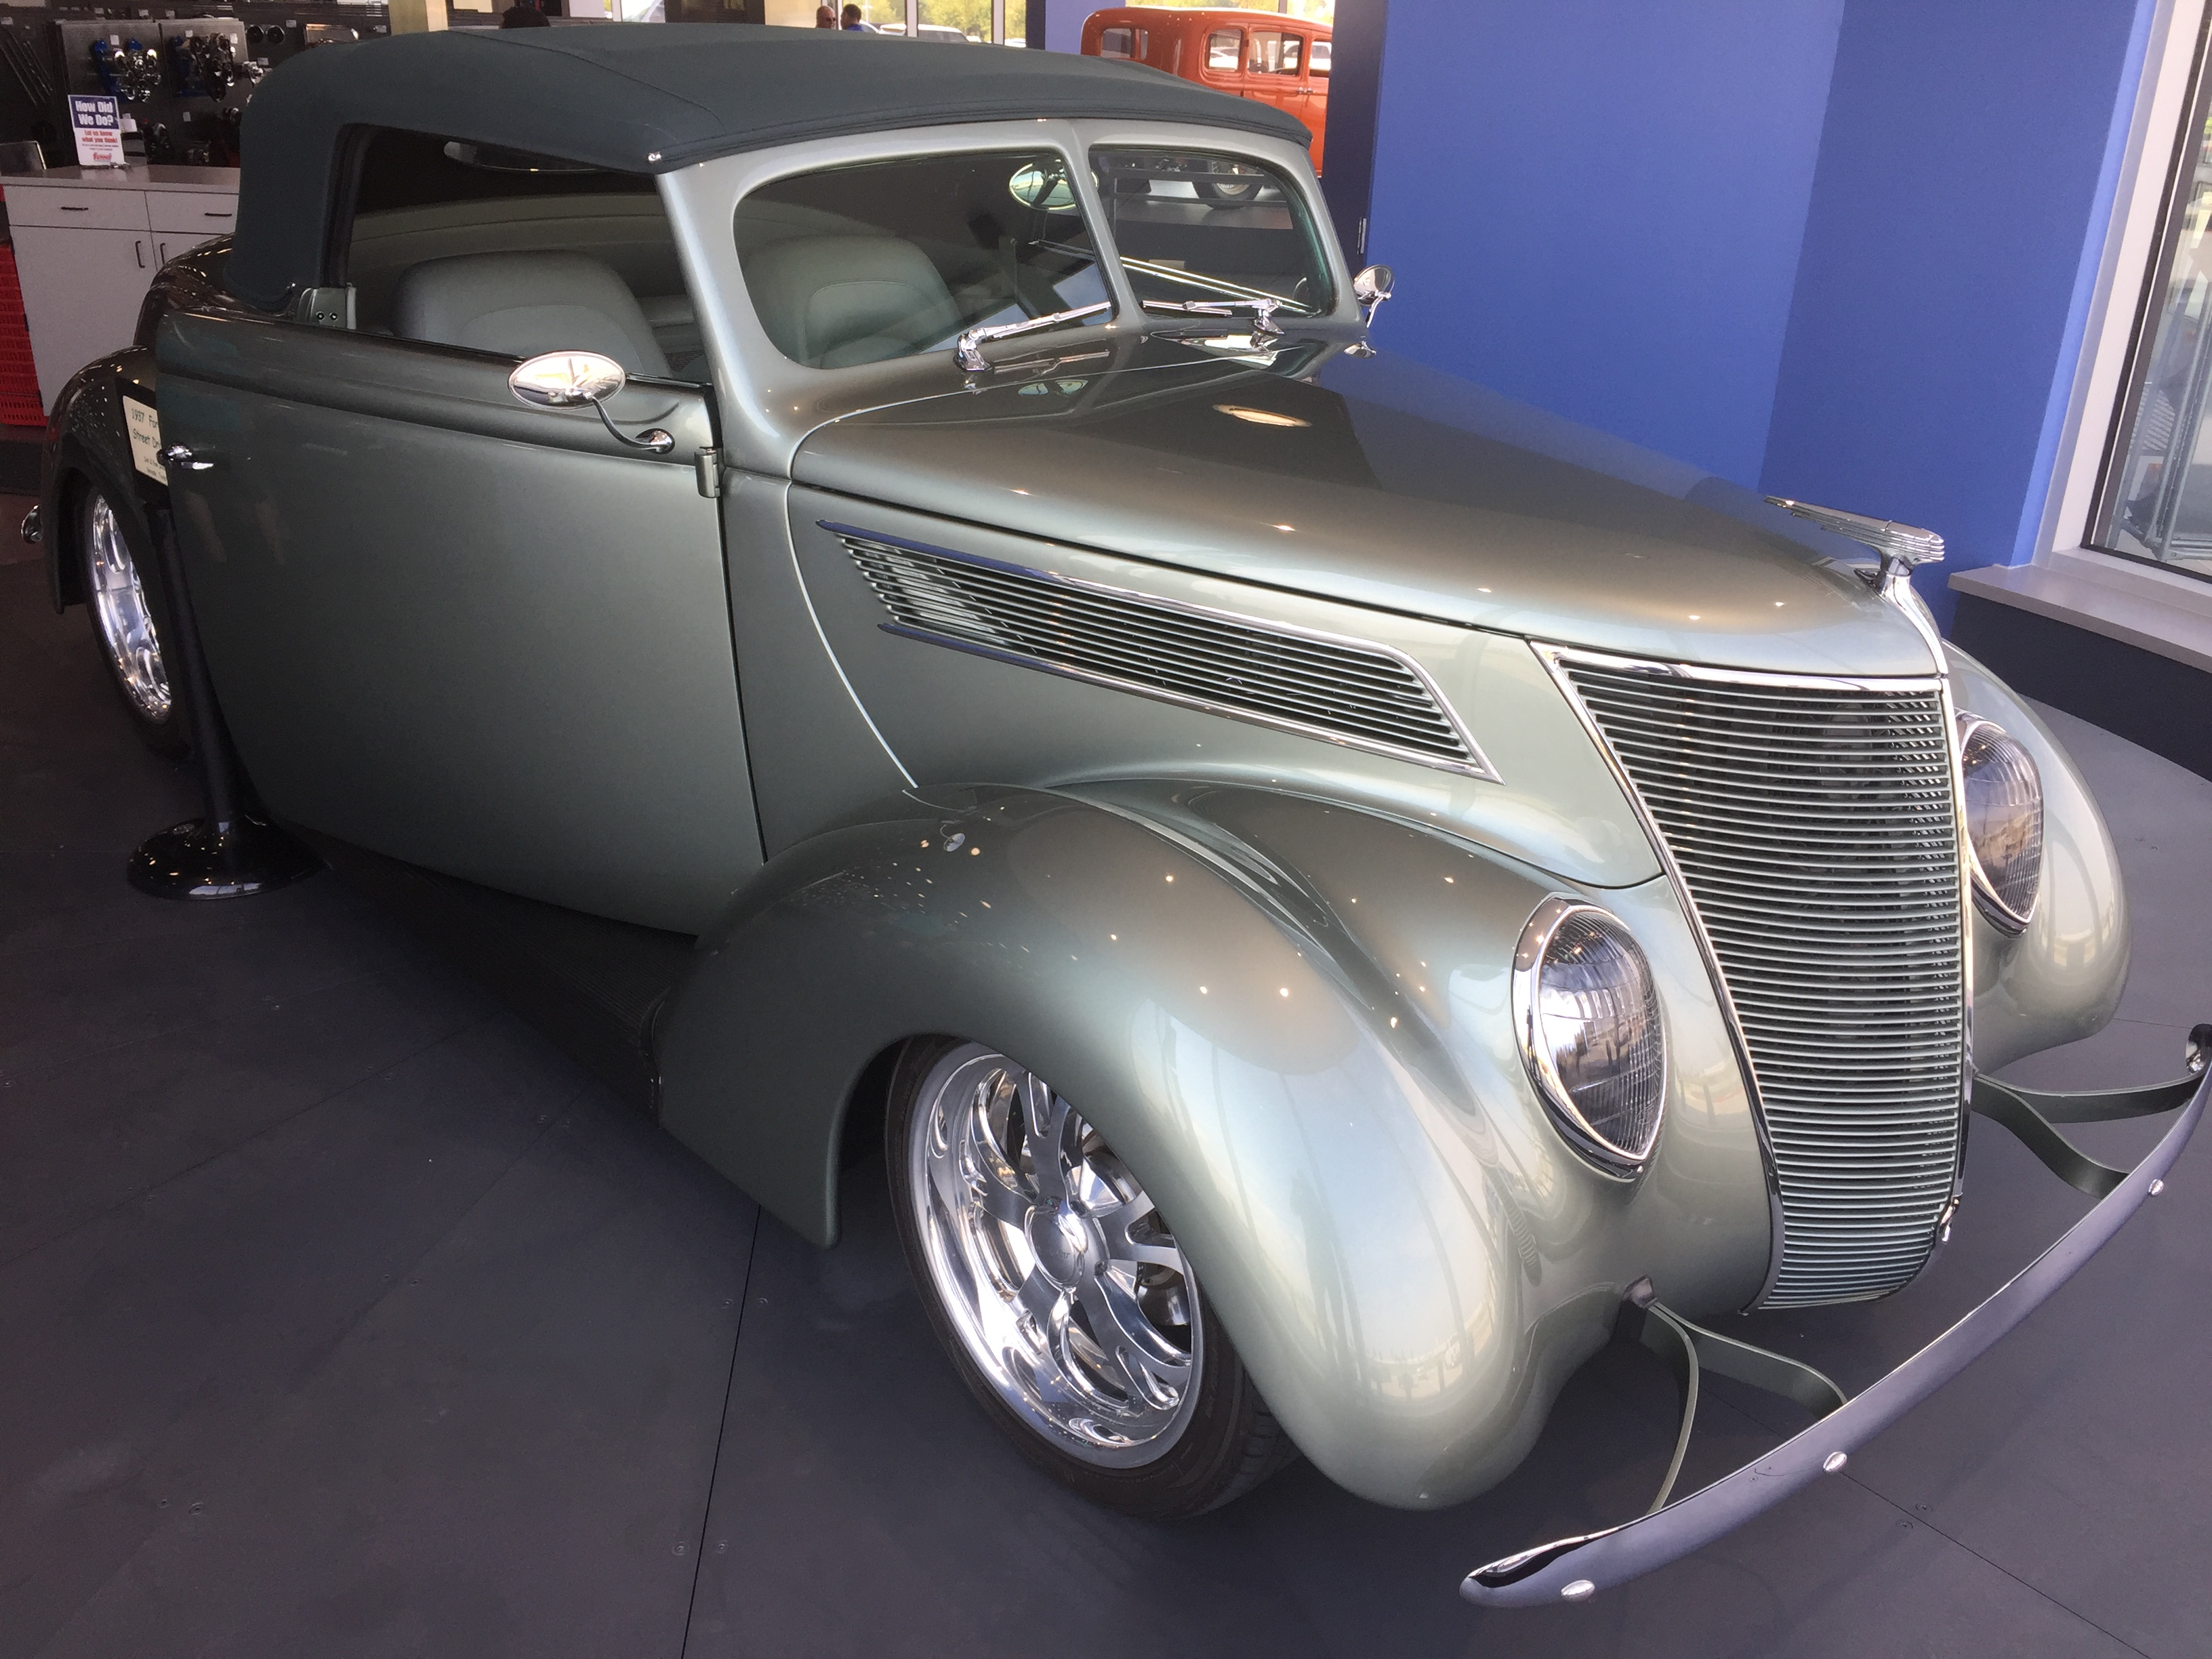 Don Silaff S 1937 Ford Convertible Takes Turntable Spot At Summit Racing Grand Opening Onallcylinders